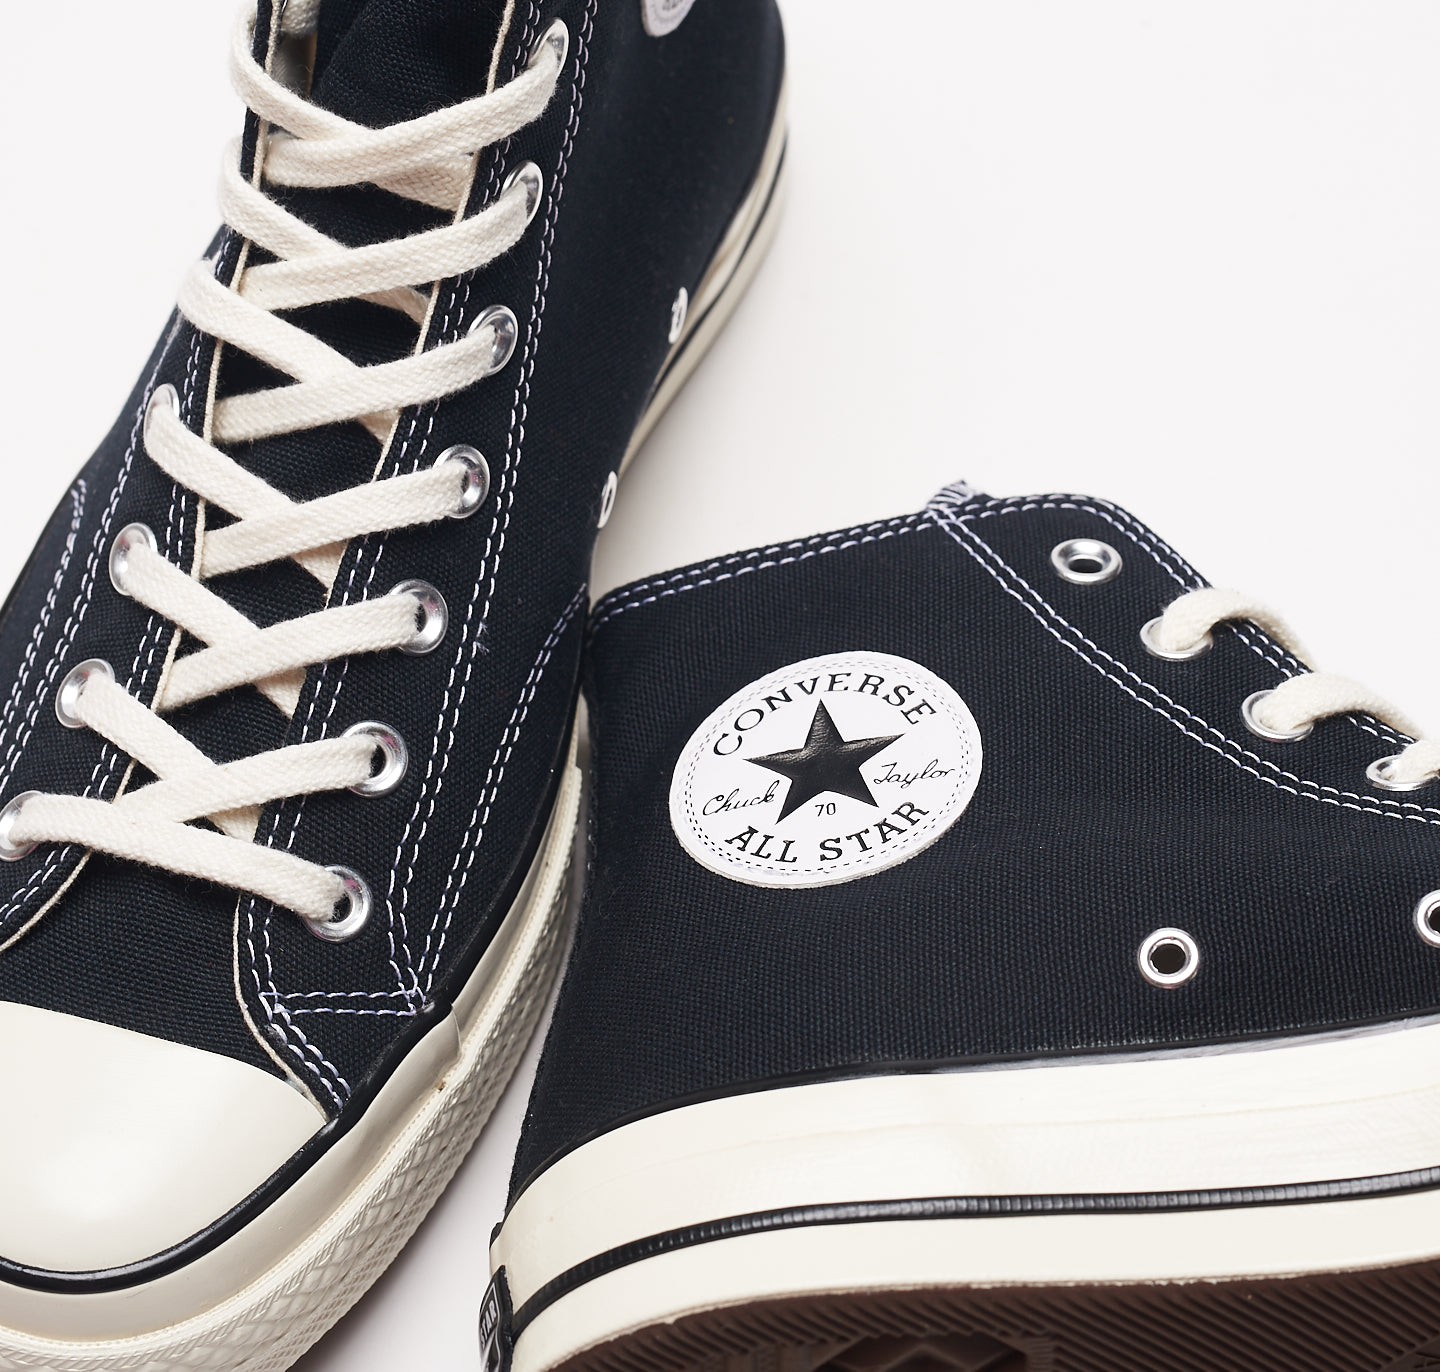 CONVERSE M'S FOOTWEAR CHUCK 70 HIGH TOP BLACK